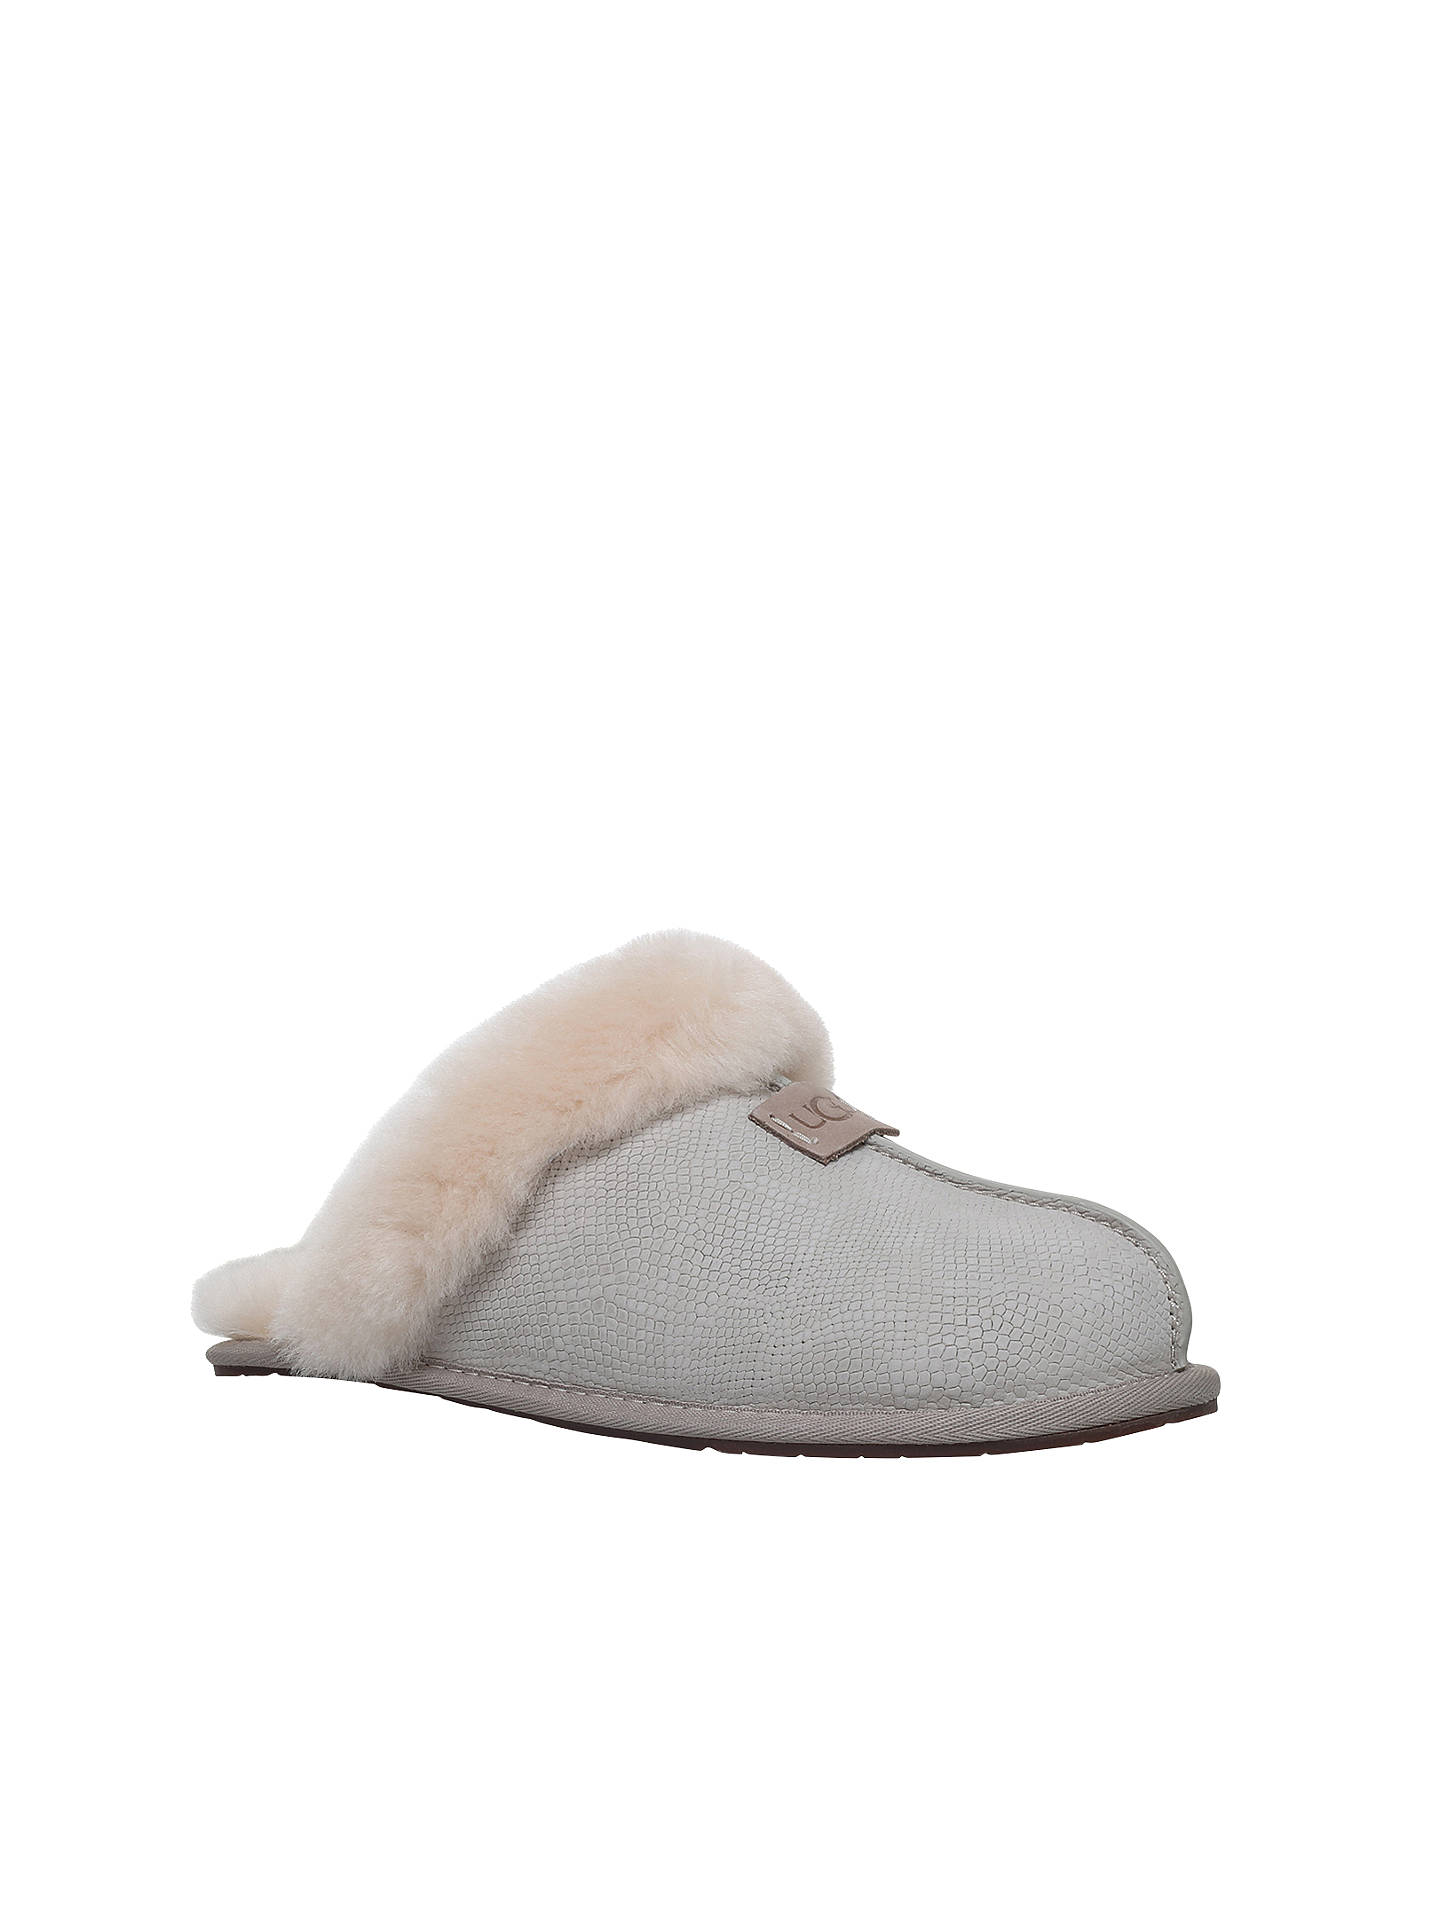 705b030bf21 UGG Scuffette II Snake Slippers at John Lewis & Partners